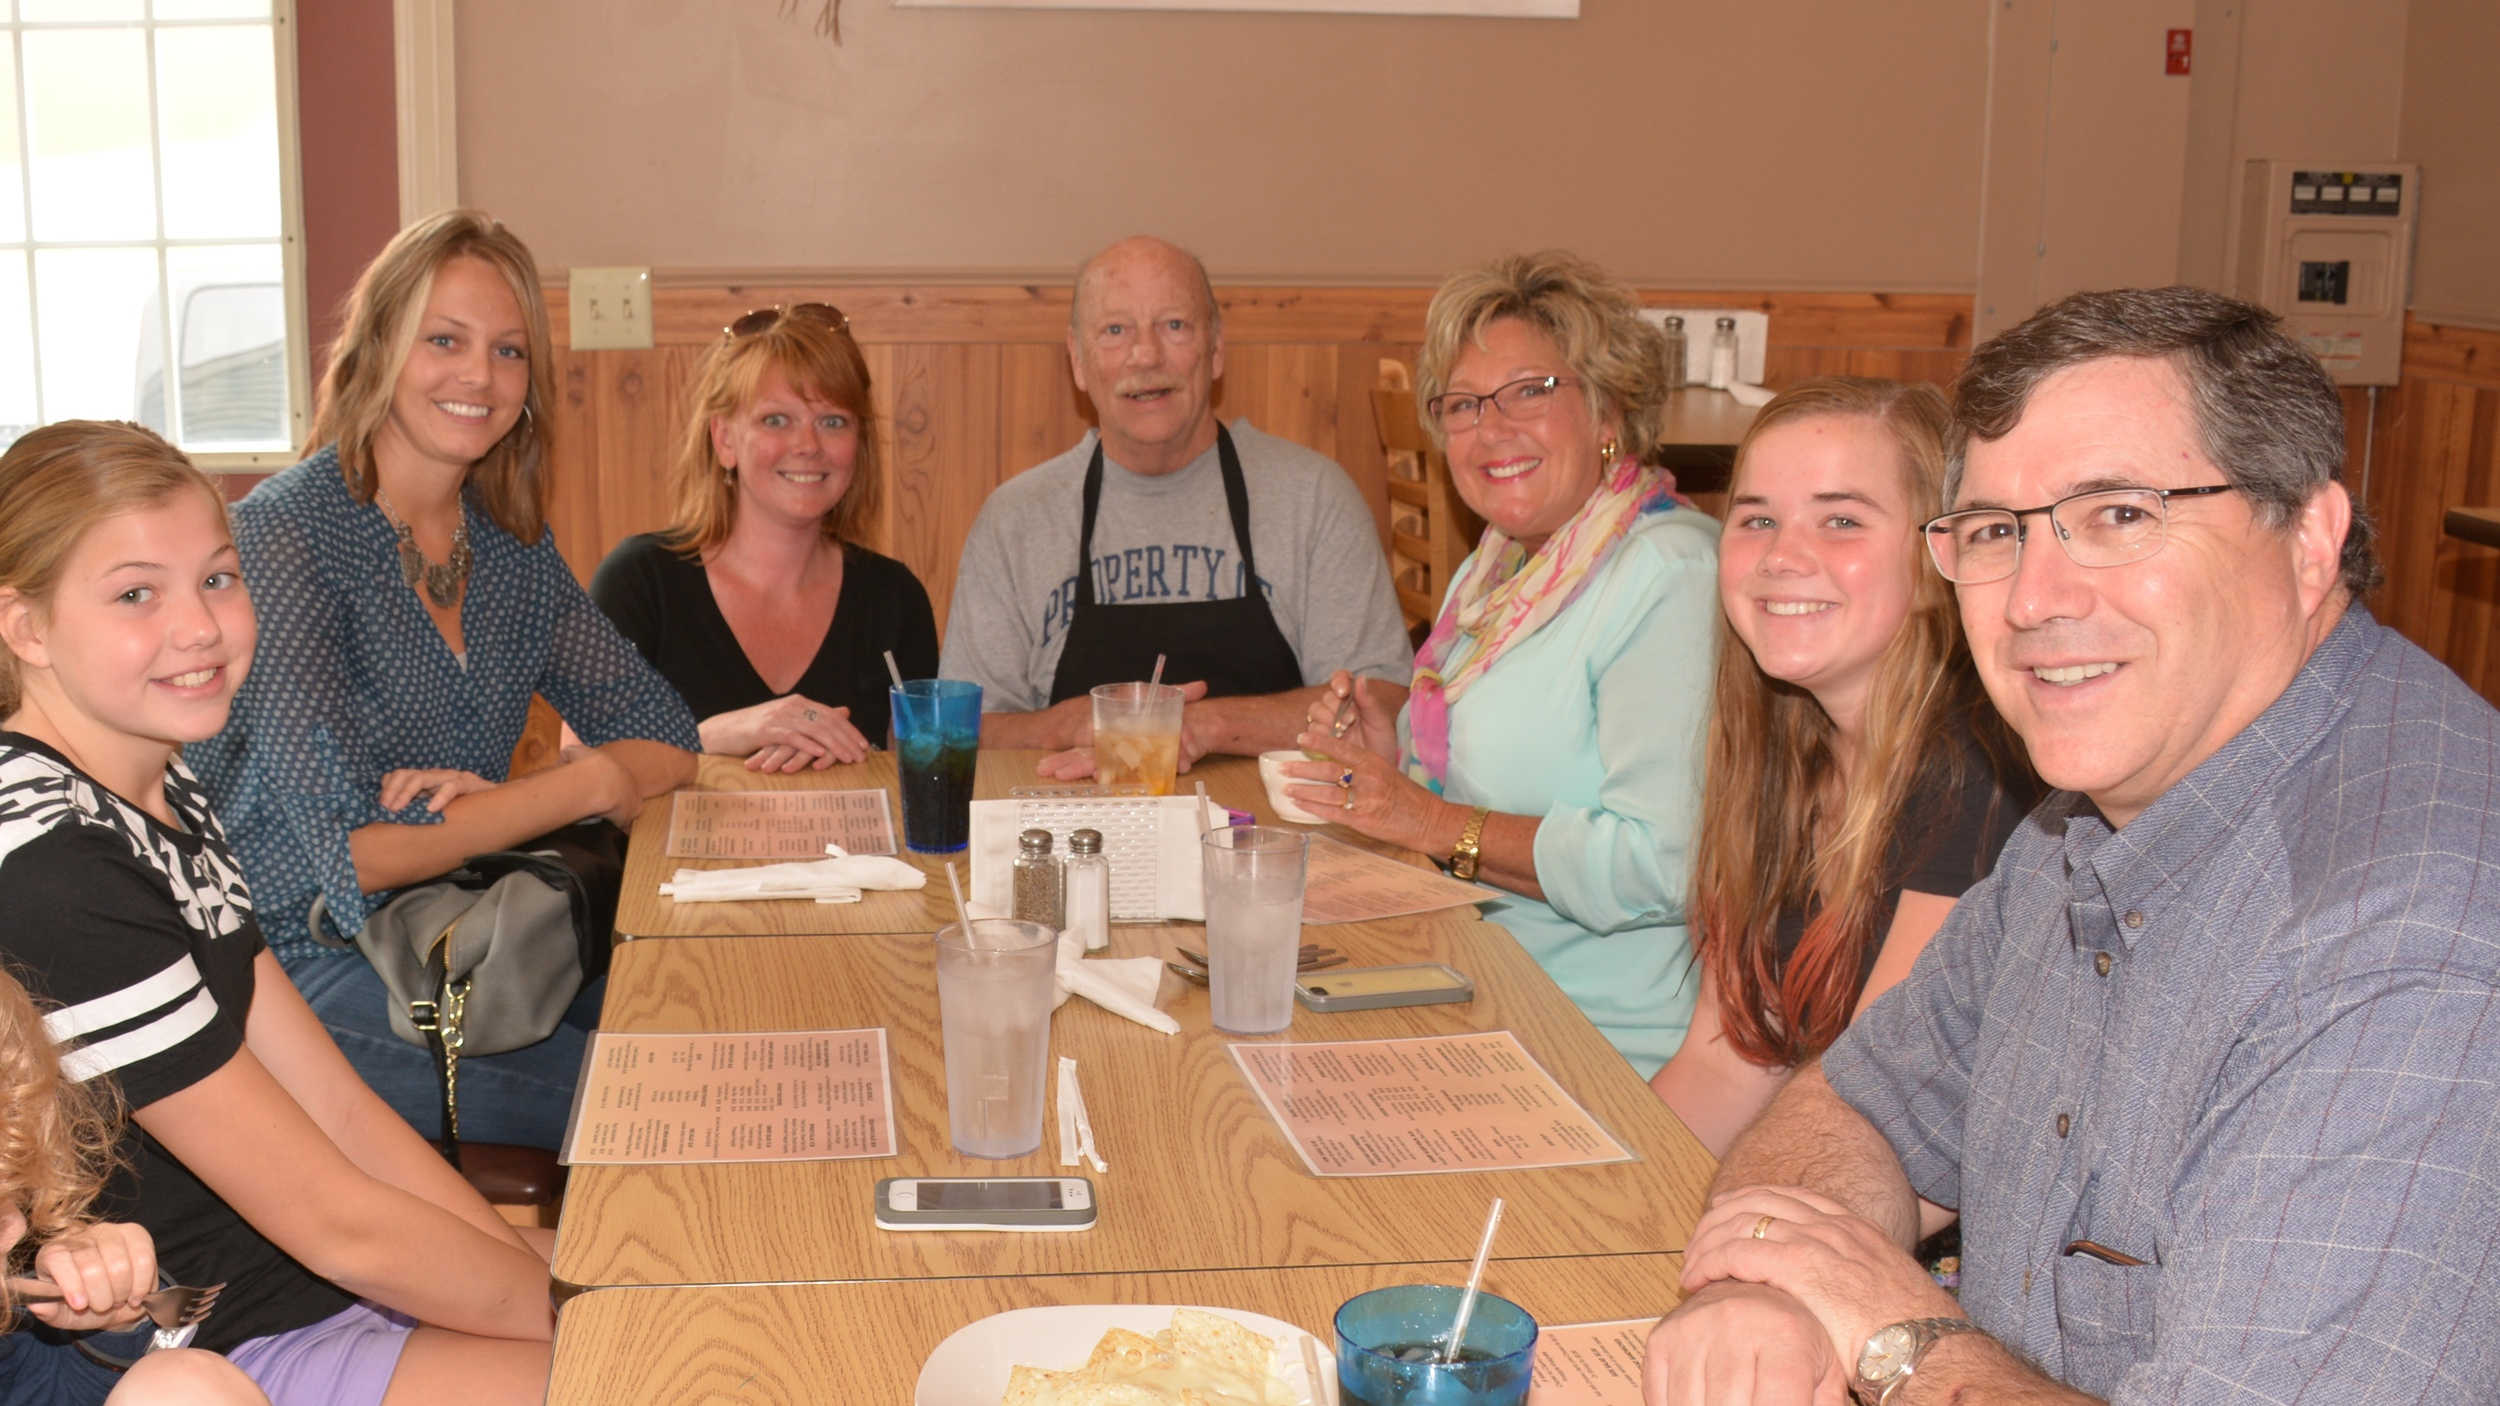 Enjoyed a great meal and a fun, friendly crew at Grand Haven Island.